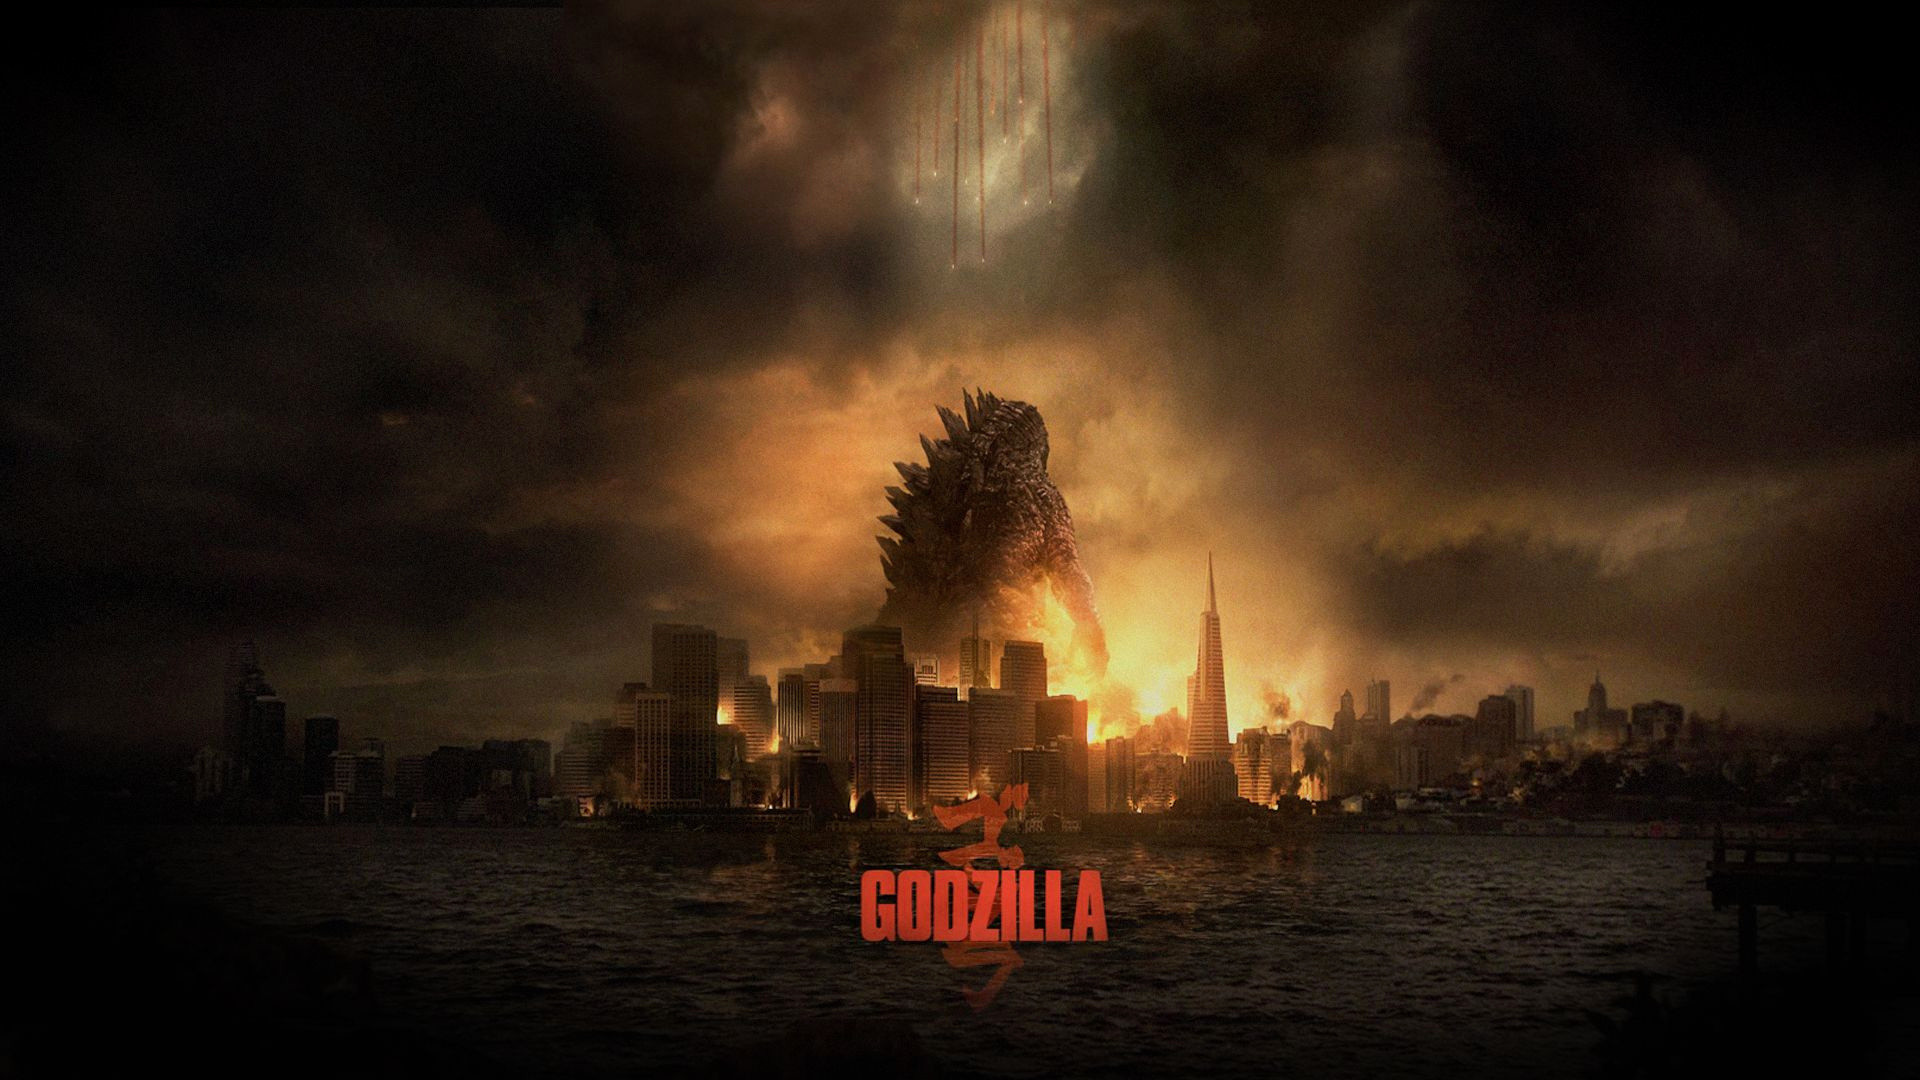 Res: 1920x1080, Godzilla Wallpaper Awesome Awesome Godzilla Wallpapers Google Search  Godzilla